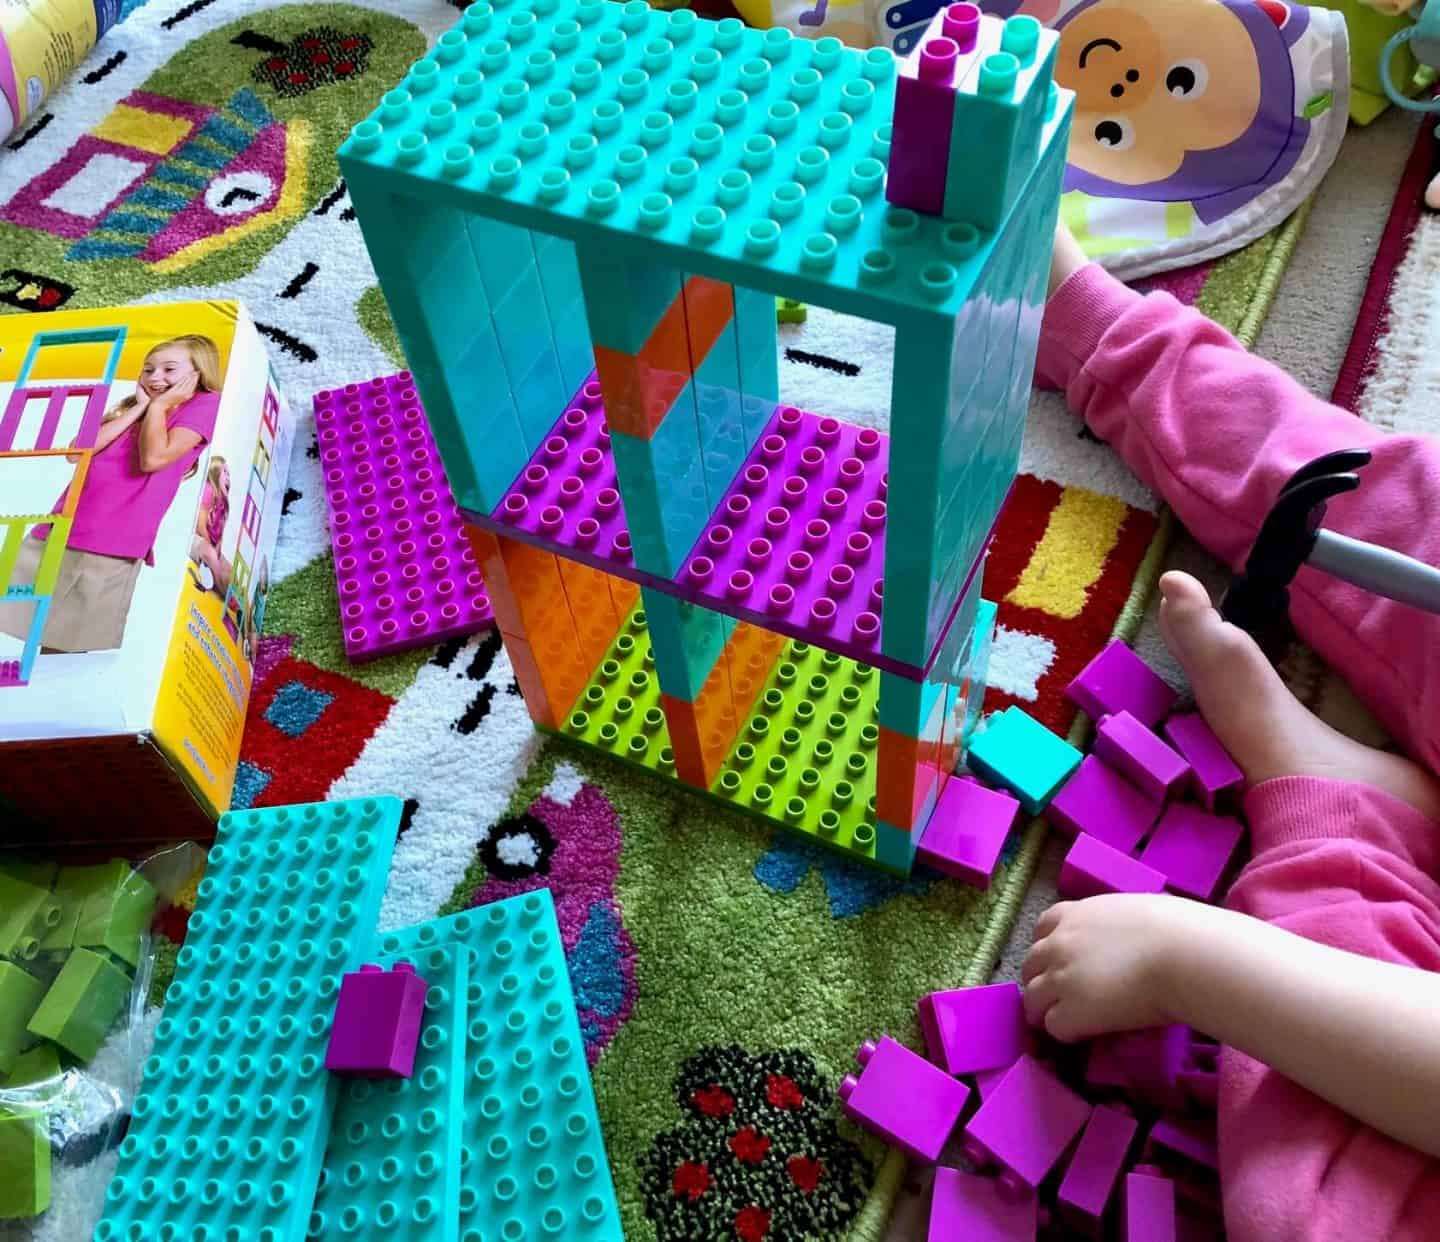 brik buster - The Original Brik Buster by Strictly Briks was designed by kids as a unique tower toppling game that's fun for the whole family.